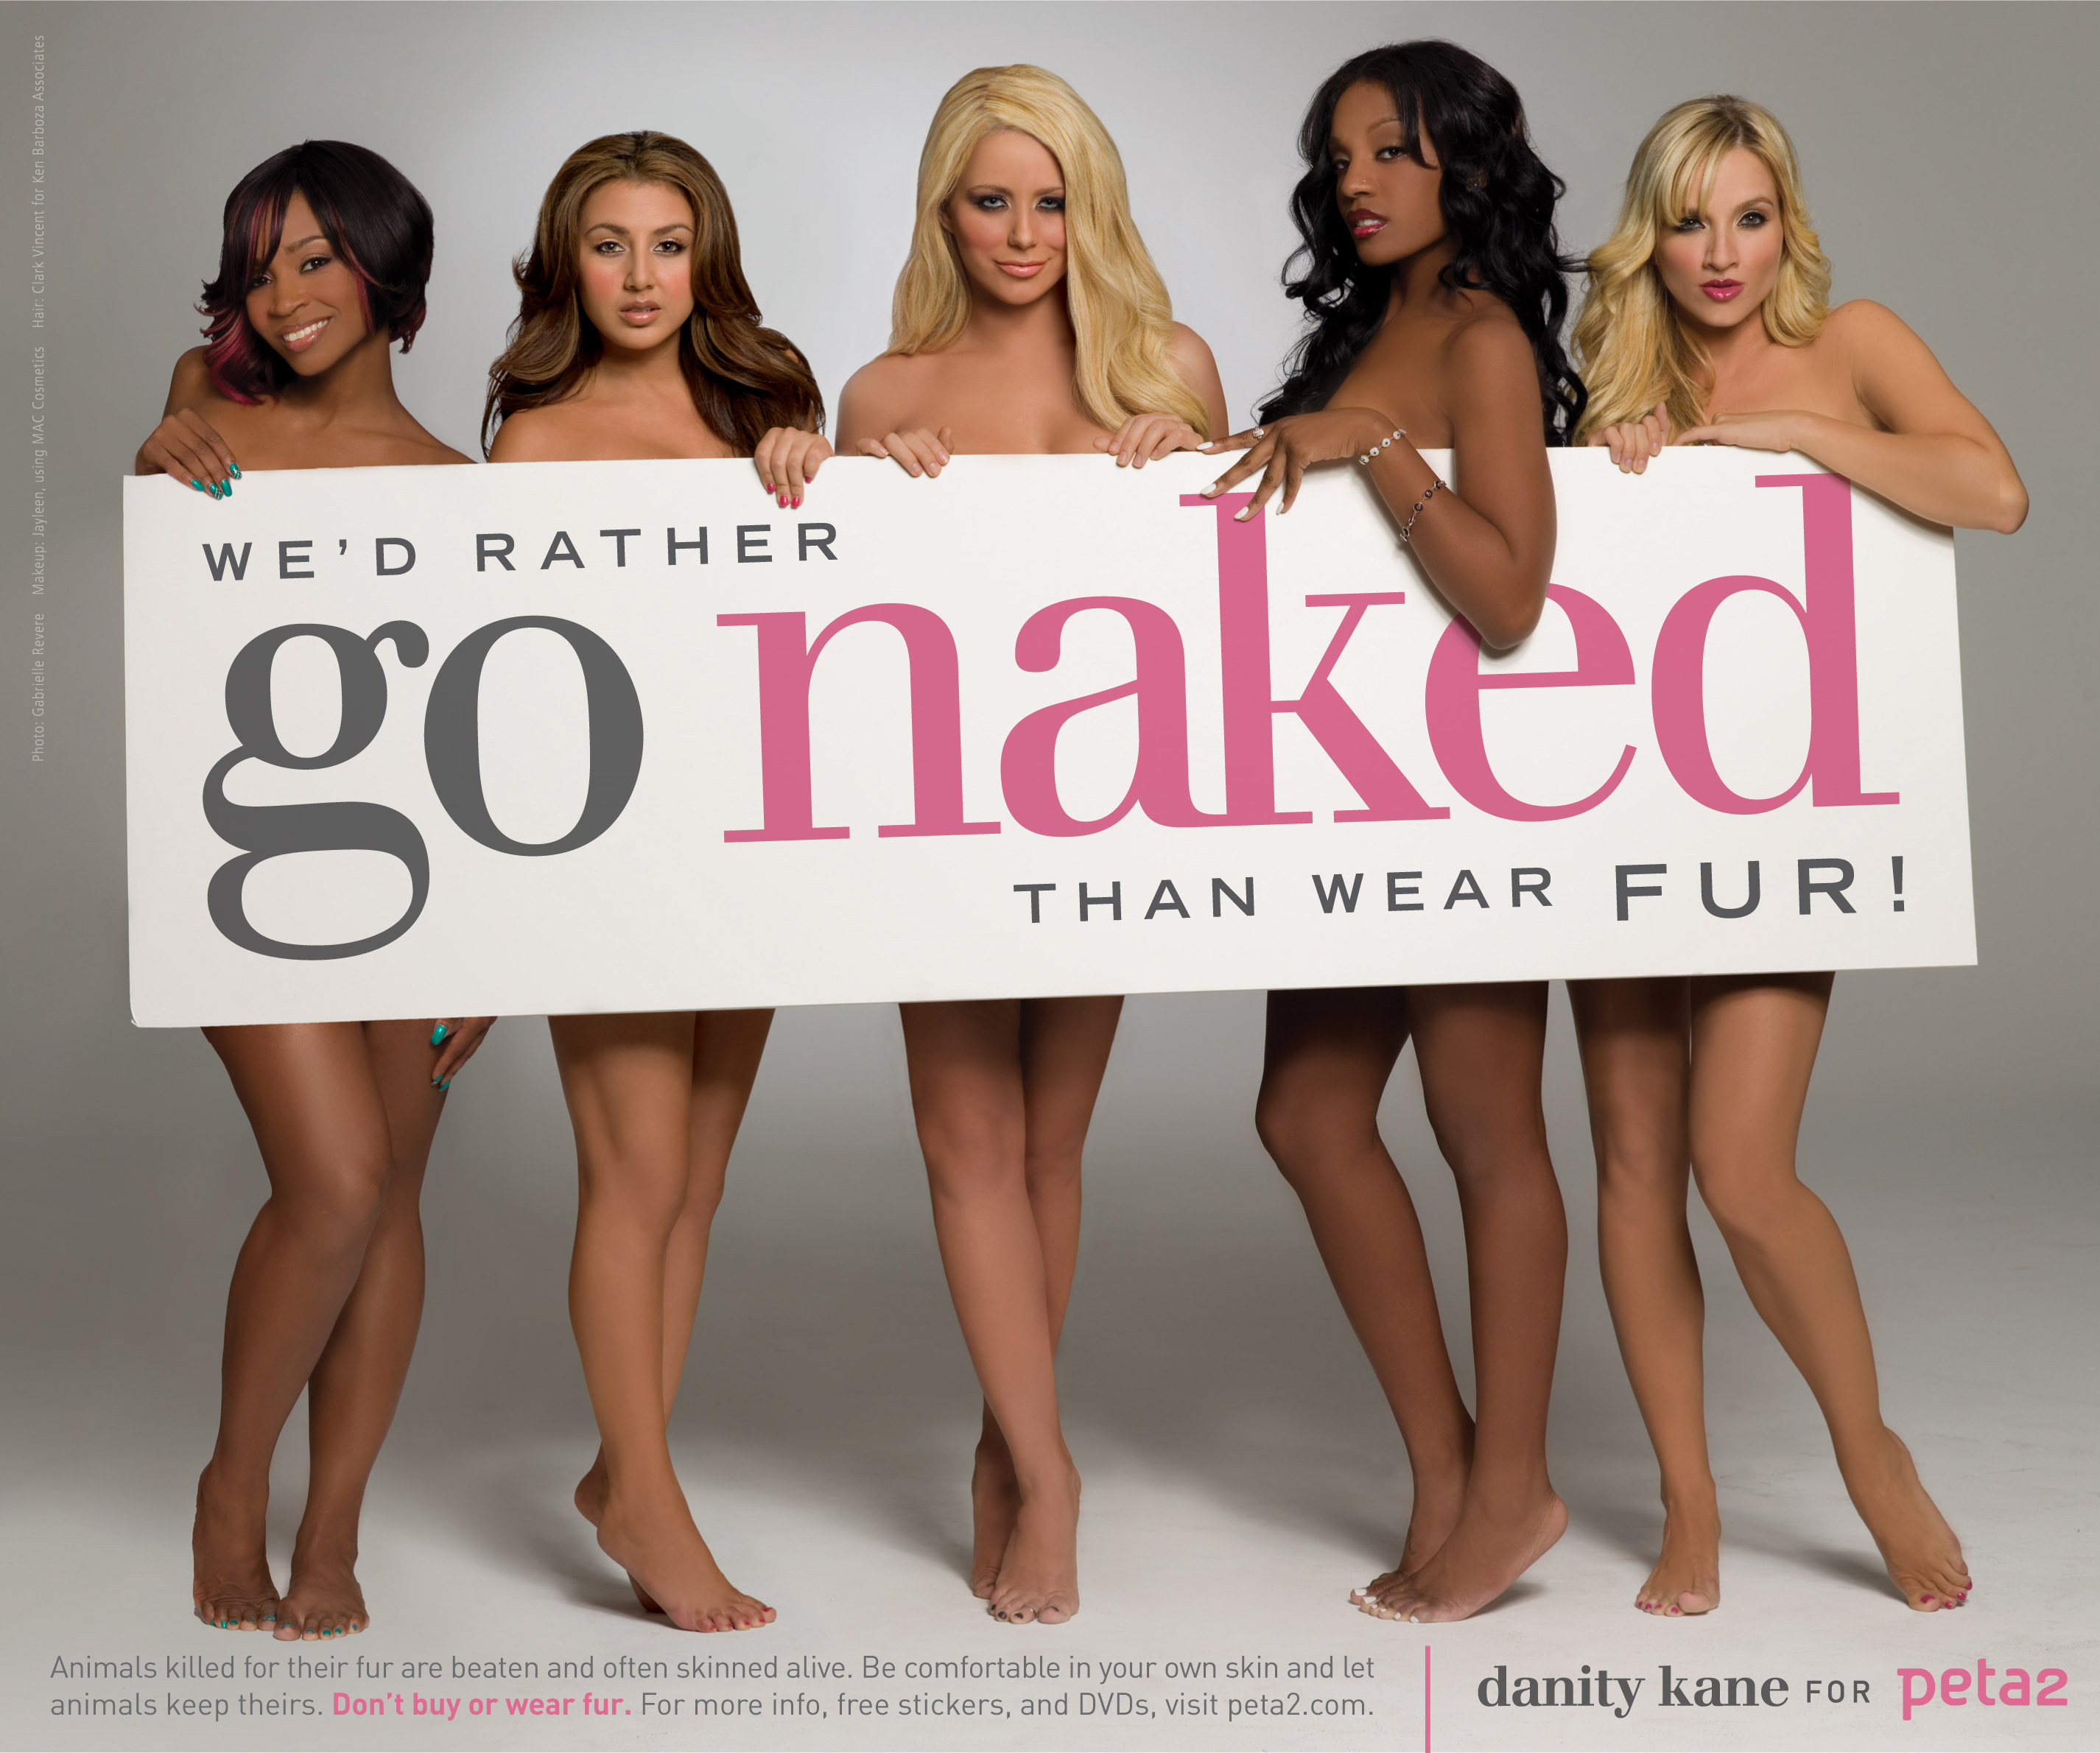 Not Danity kane nude opinion